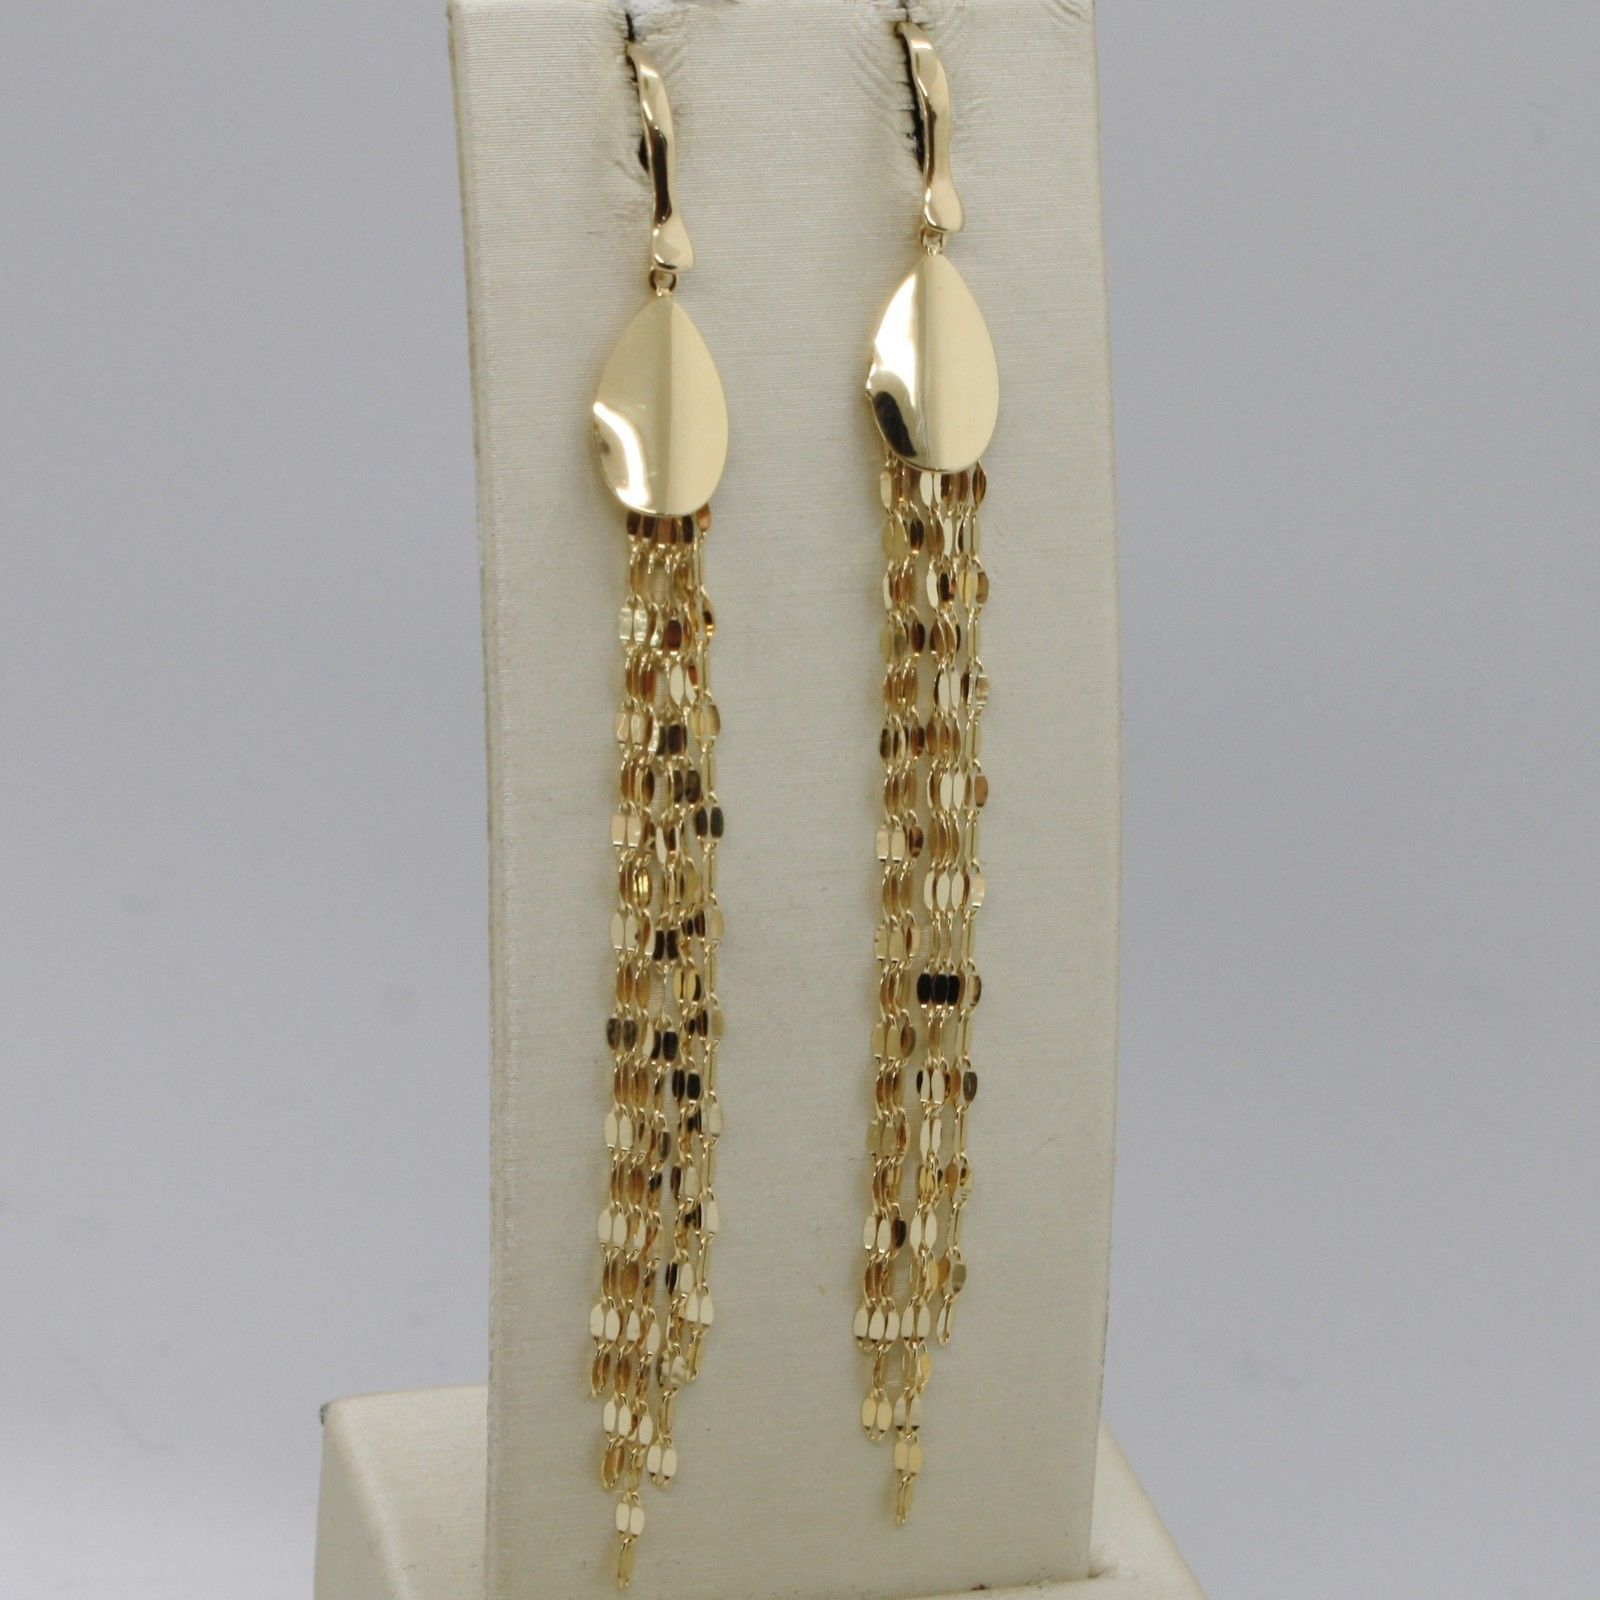 SOLID 18K YELLOW GOLD LONG PENDANT EARRINGS WITH DROP AND FRINGES, MADE IN ITALY